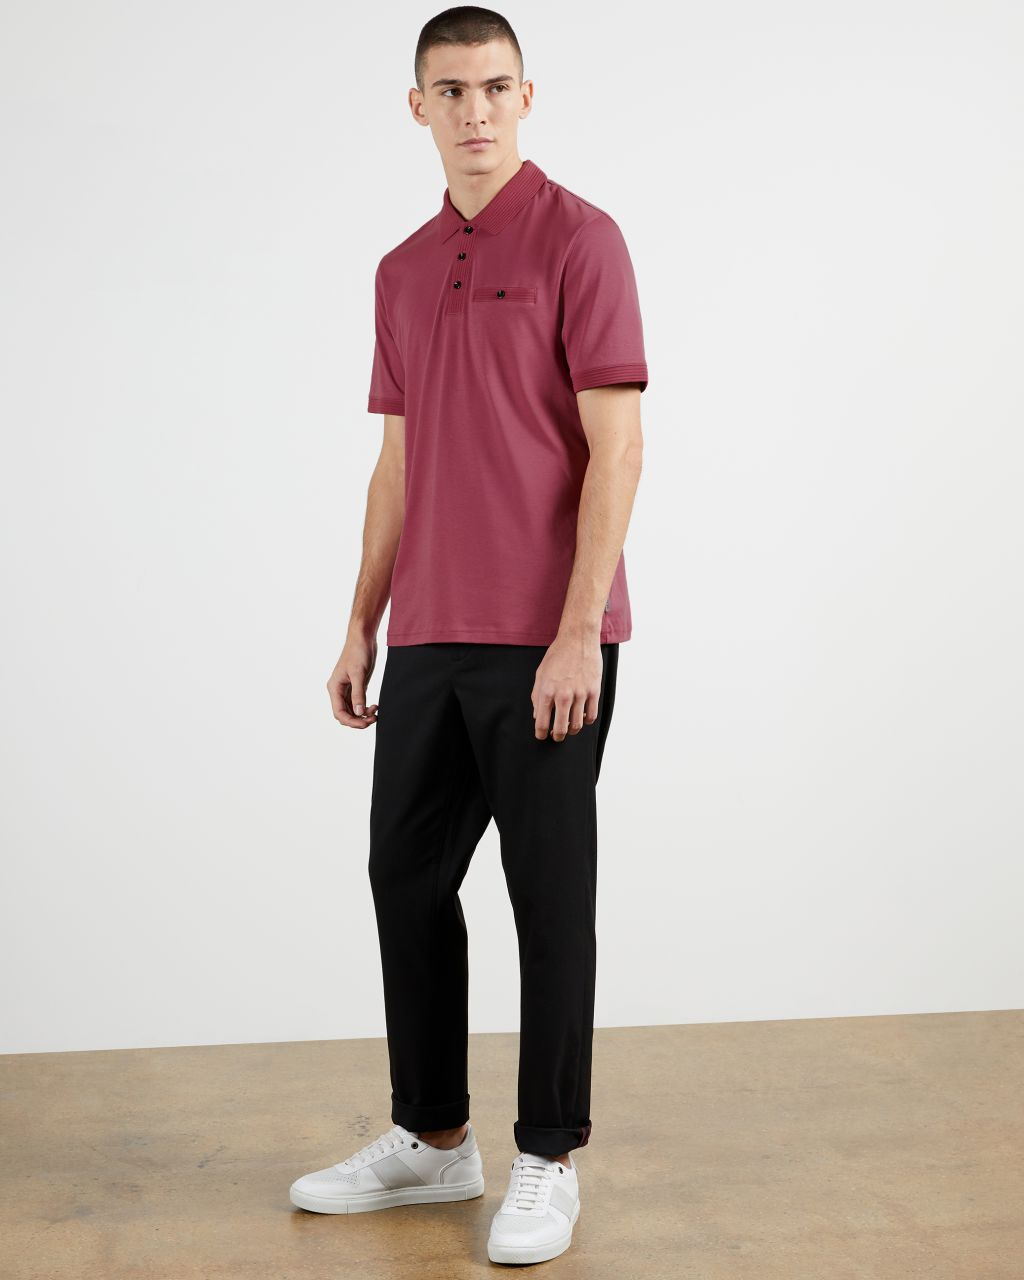 TED BAKER Polo Top | TED BAKER SALE